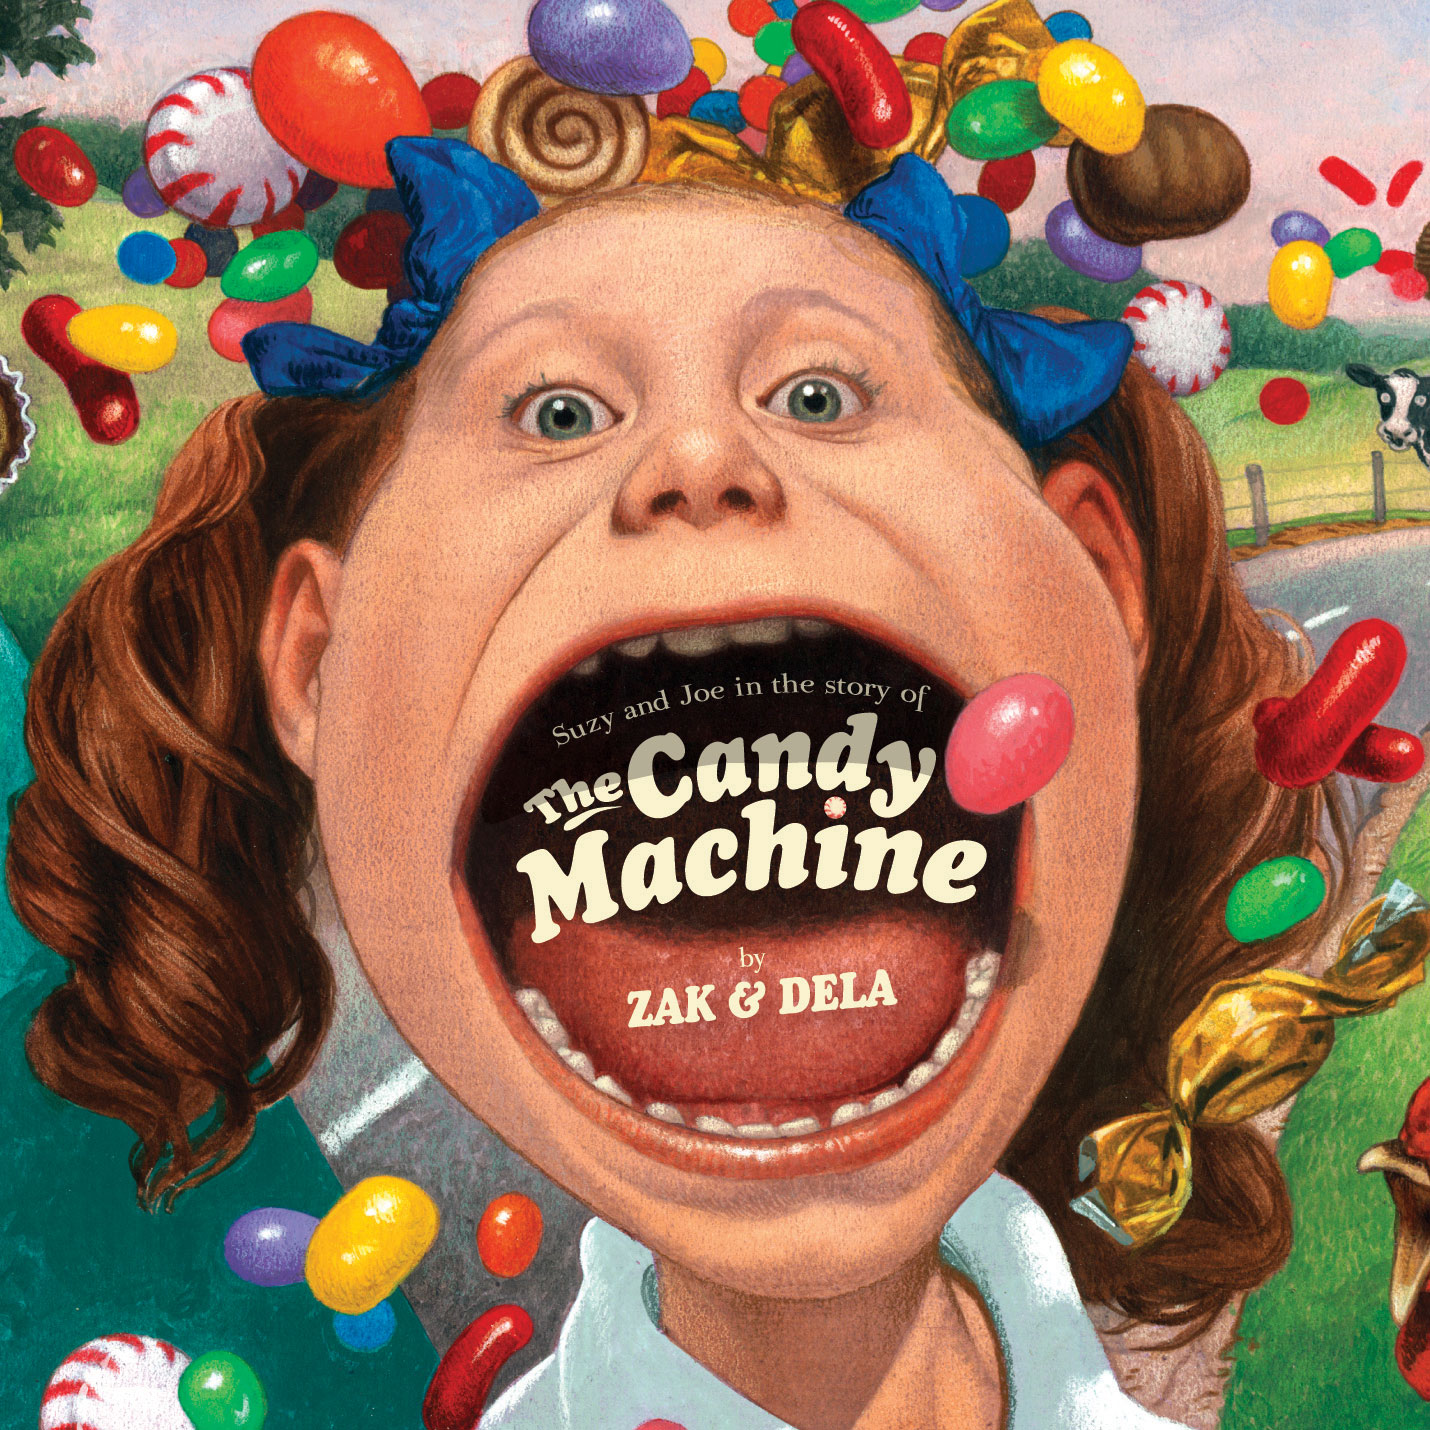 The Candy Machine by Zak Morgan